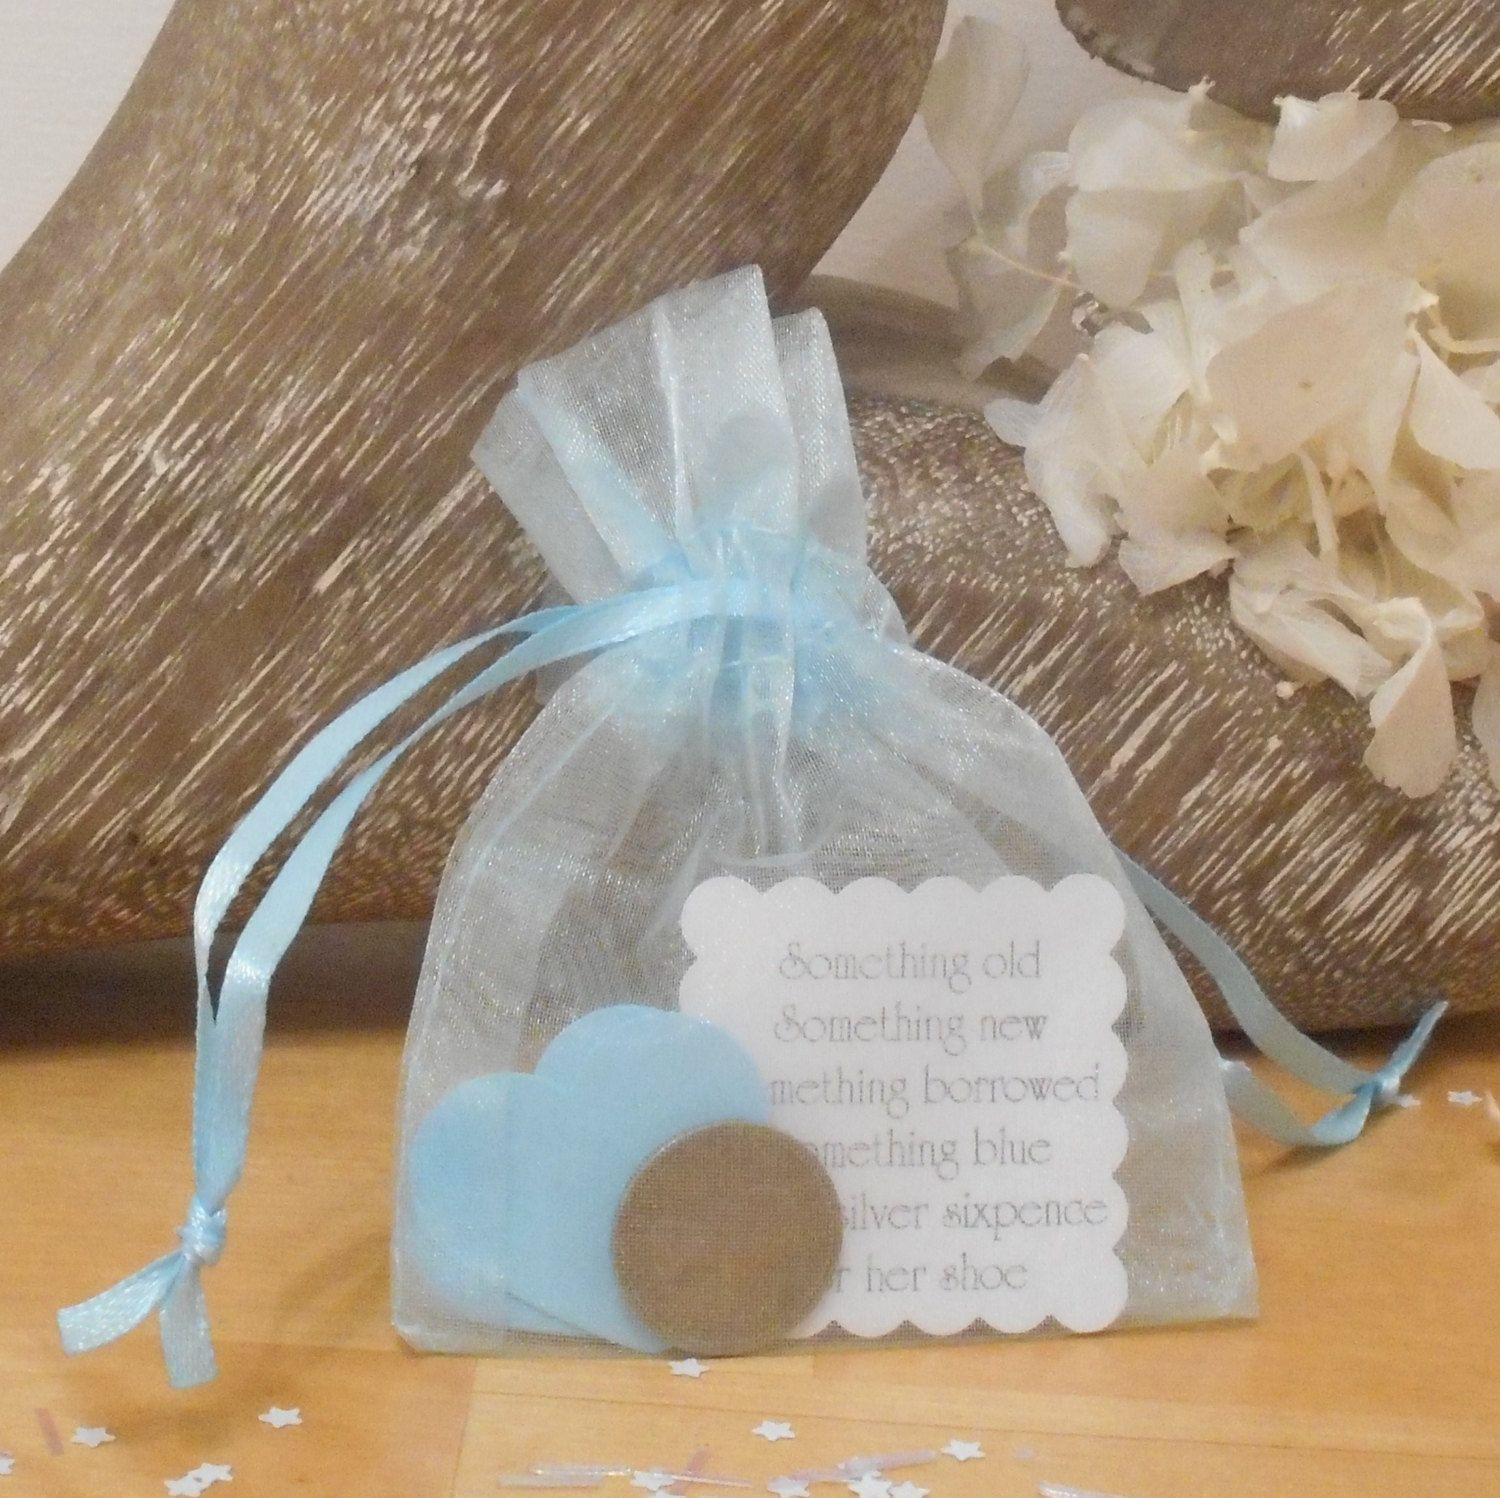 Silver Sixpence Bridal Good Luck Gift Weddings